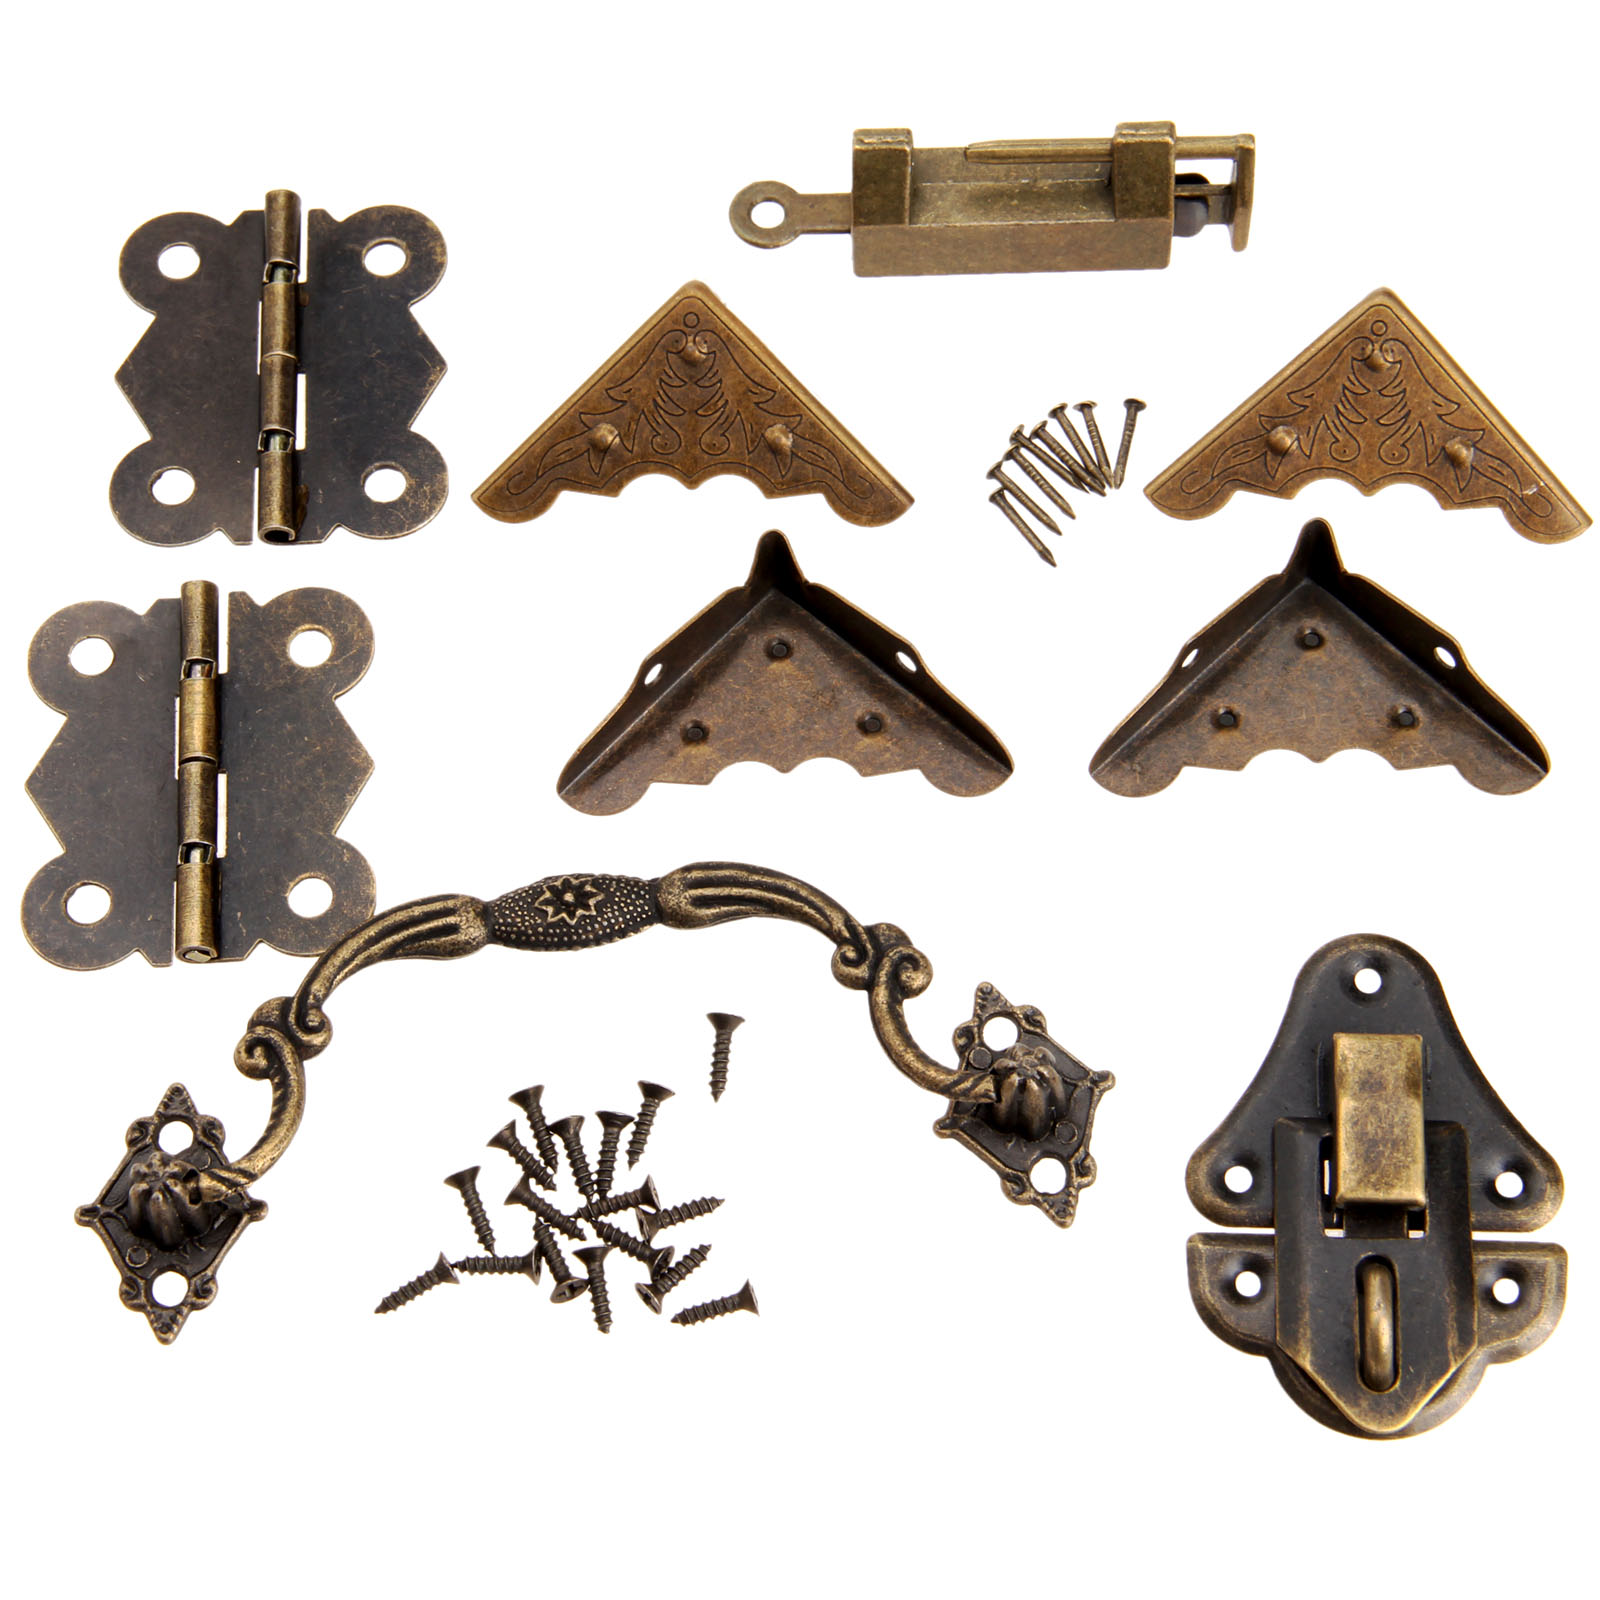 9Pcs Chinese Brass Hardware Set Antique Wooden Box Latch Hasp+Pull Handle+Hinges+Corner  ...